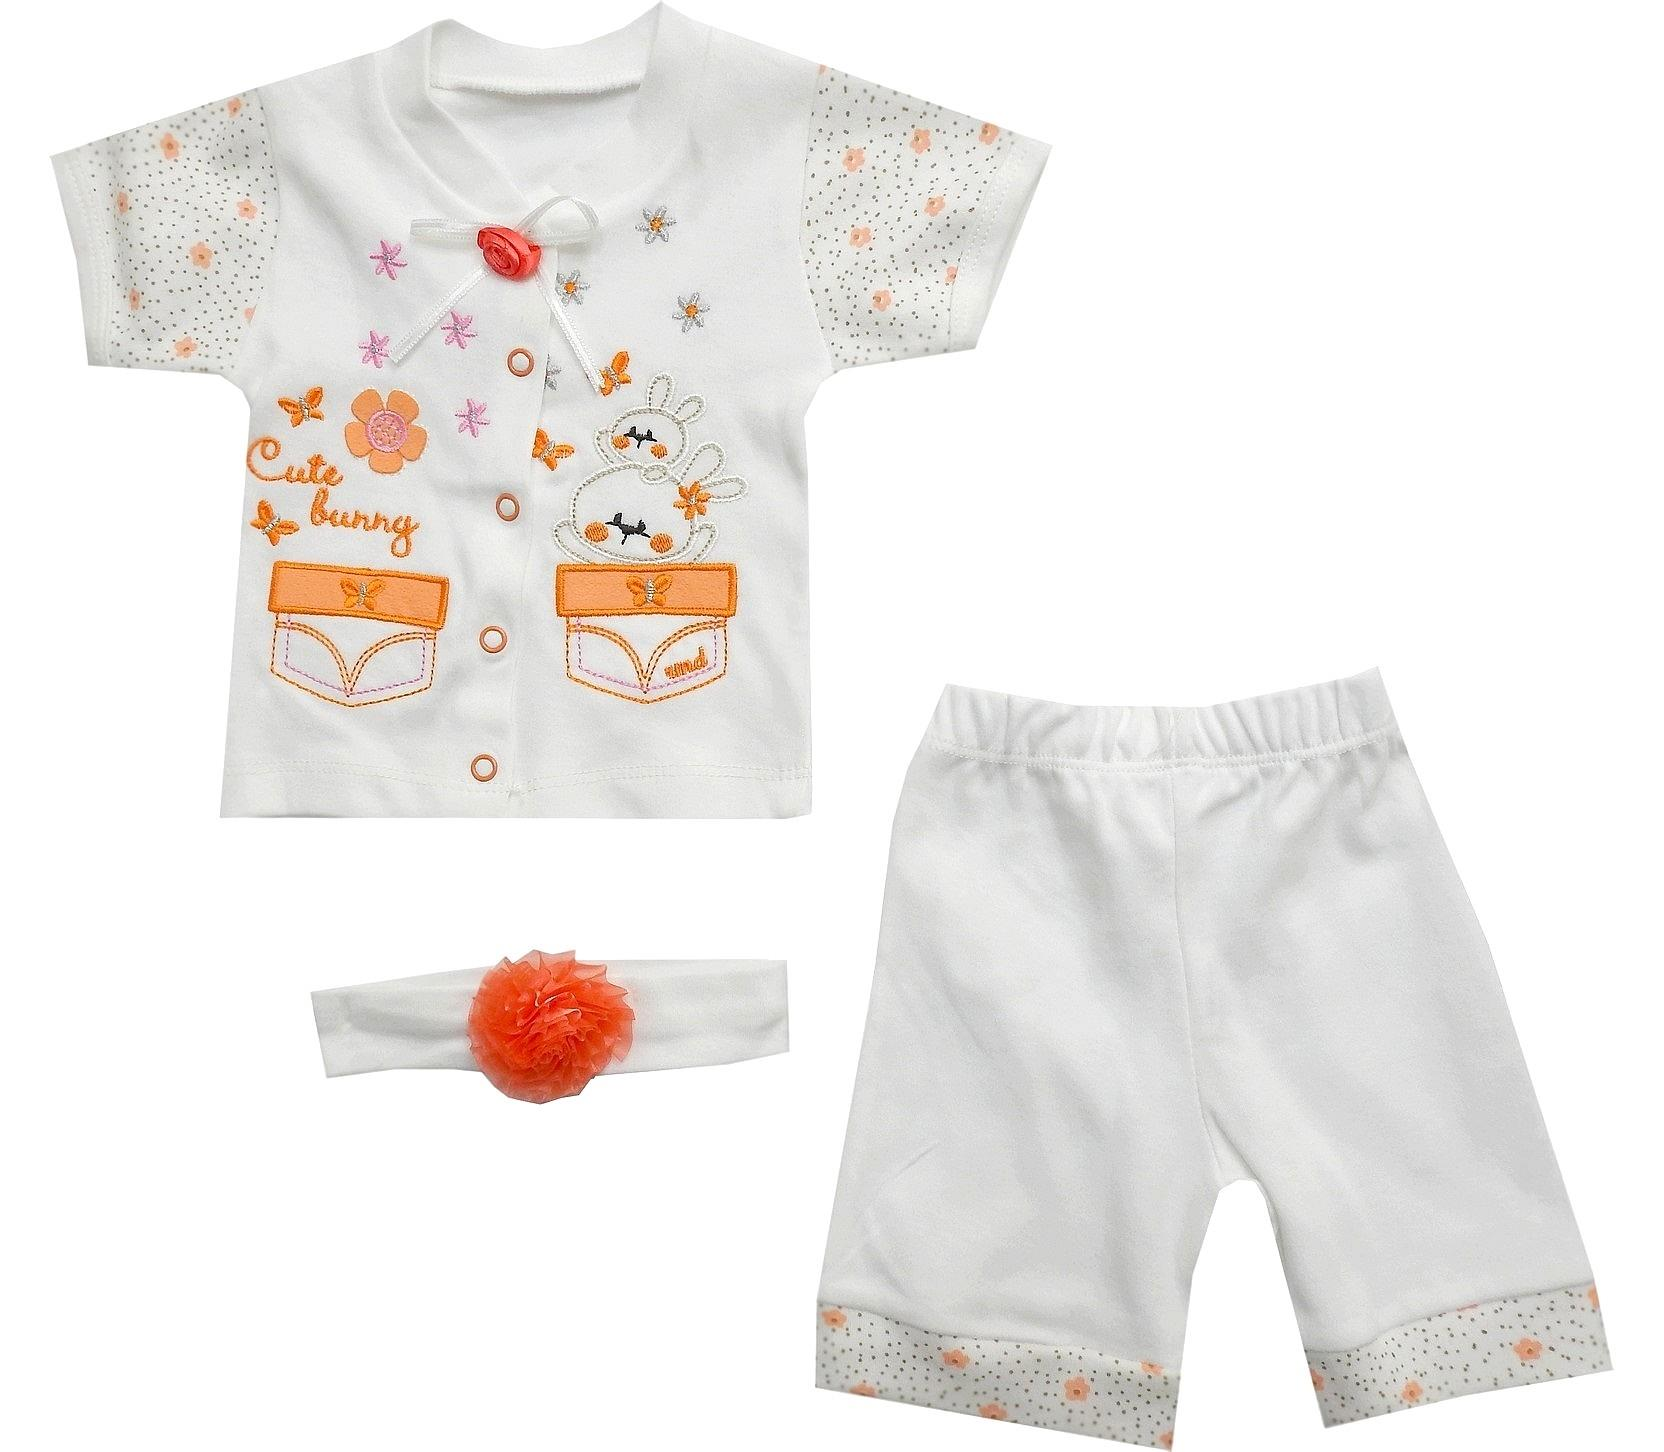 BUNNY PRINTED DESIGN HAIR BAND, T-SHIRT AND SHORT TRIPLE SET FOR GIRL (6-9-12-18 MONTH)